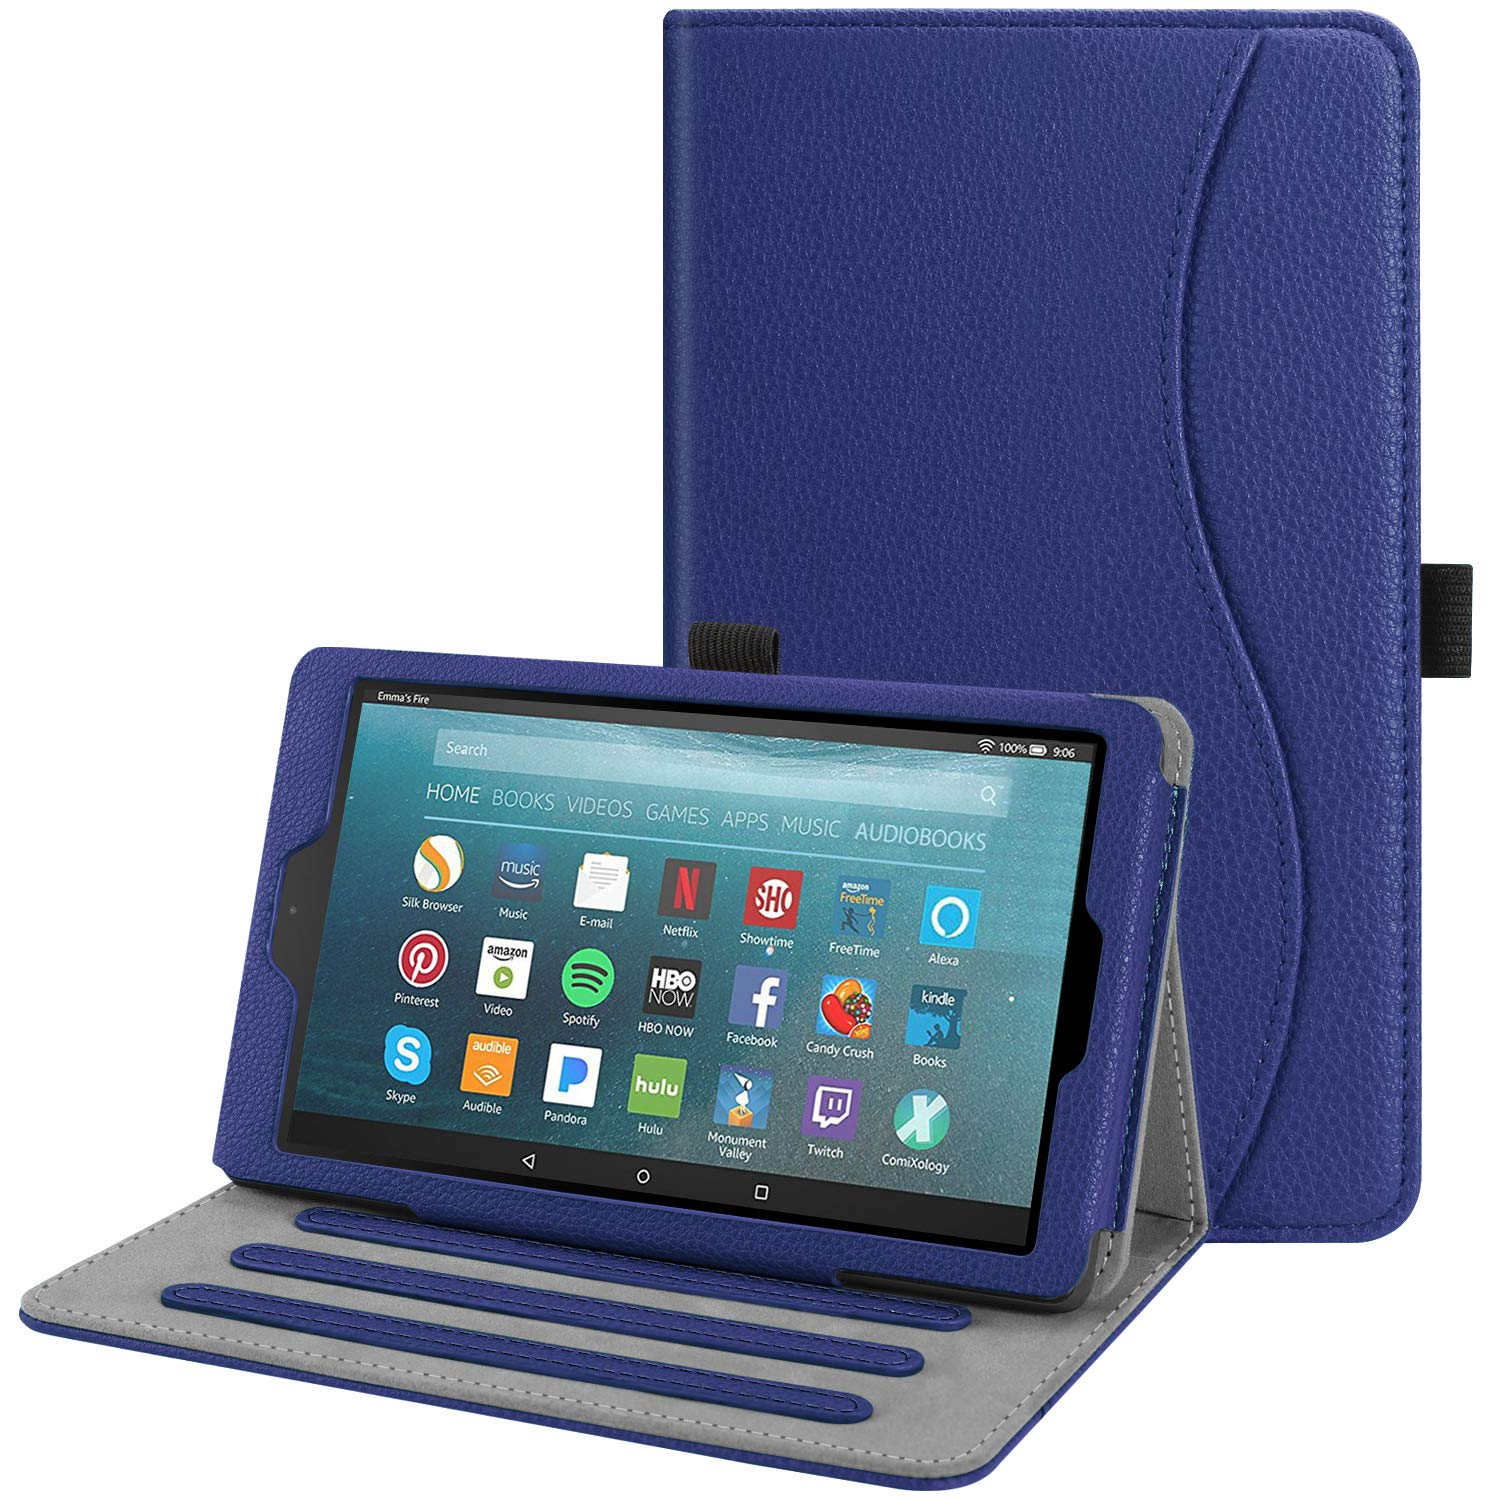 Fintie Case for All-New Amazon Fire 7 Tablet (9th Generation, 2019 Release) - [Multi-Angle] Viewing Folio Stand Cover with Pocket Auto Wake/Sleep, Navy